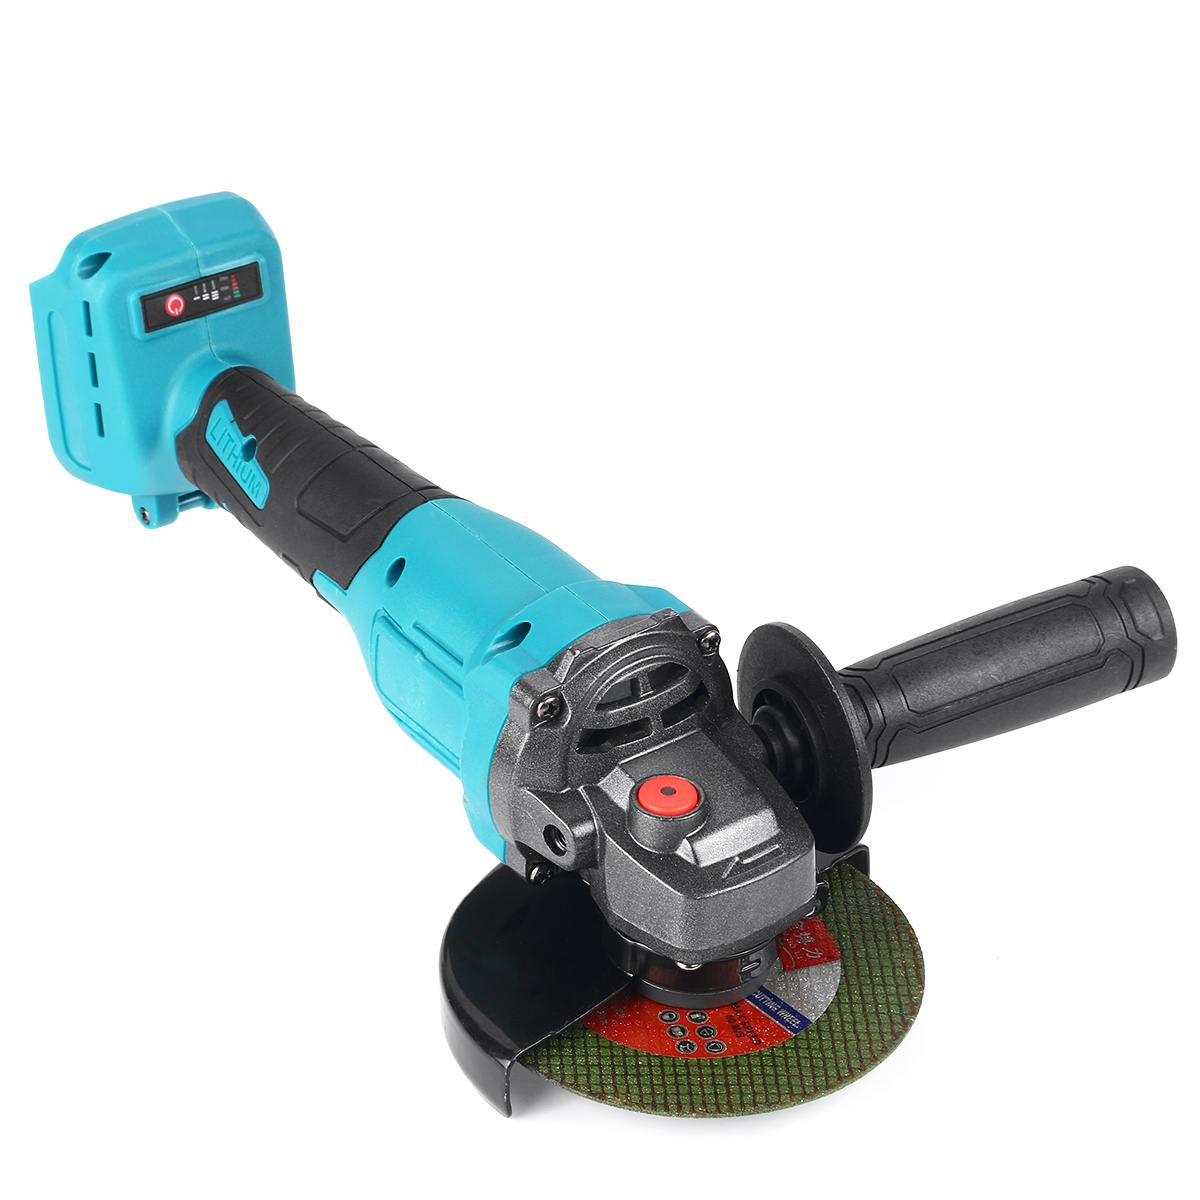 Tools : Brushless Angle Grinder 125mm 800W 20000rpm Electric Angle Grinder Machine with 4pcs Angle Grinding Disc for Makita 18V Battery